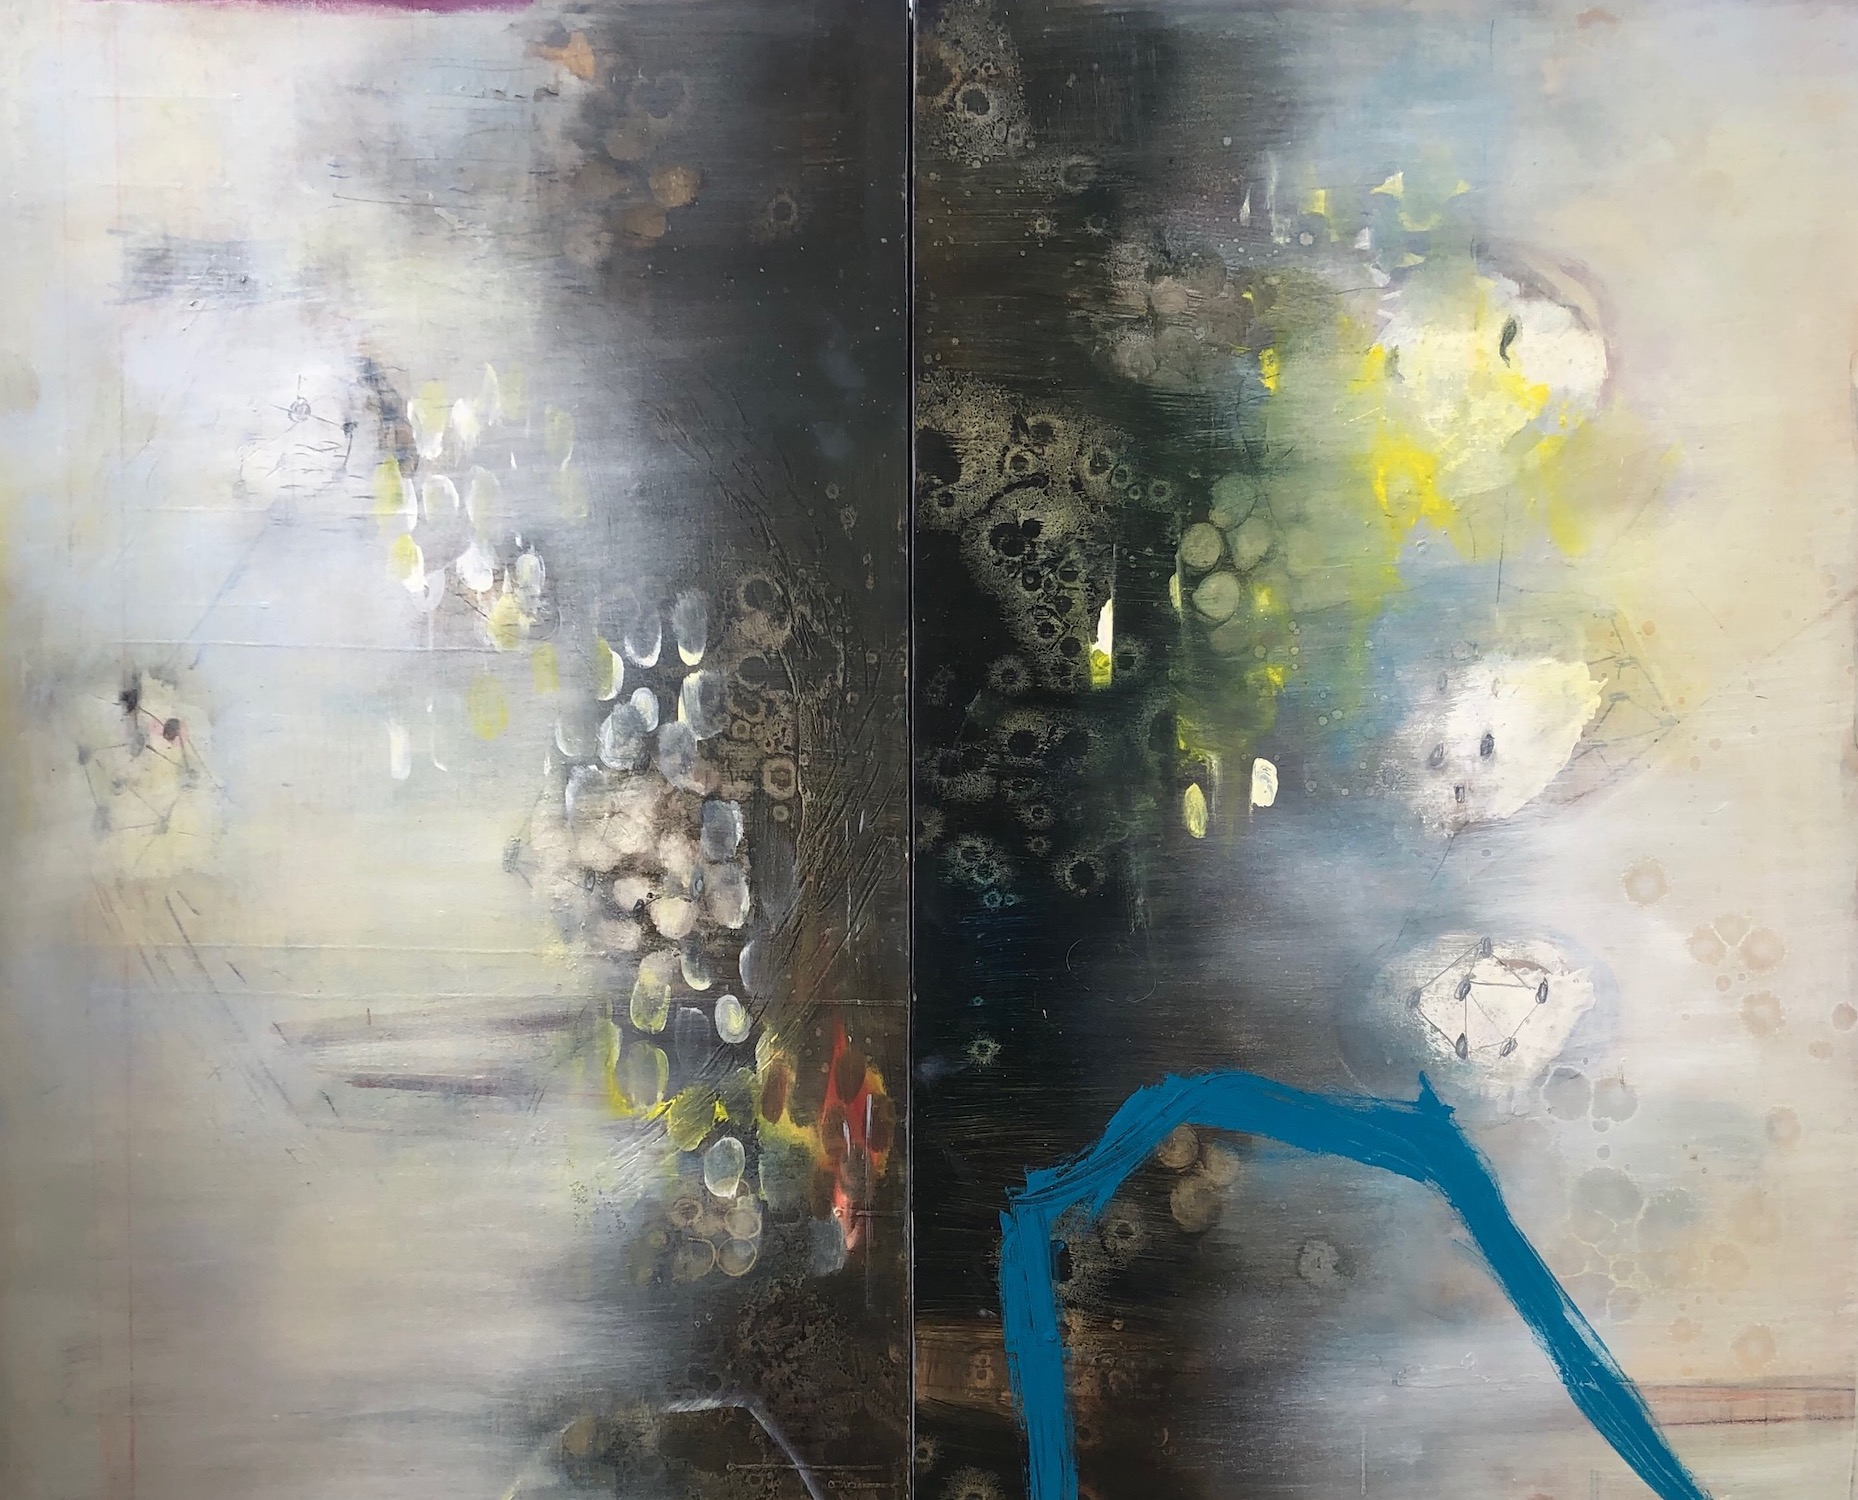 Lauren Mantecon, Mingle, mixed media and oil on panels, 42x37, 2019